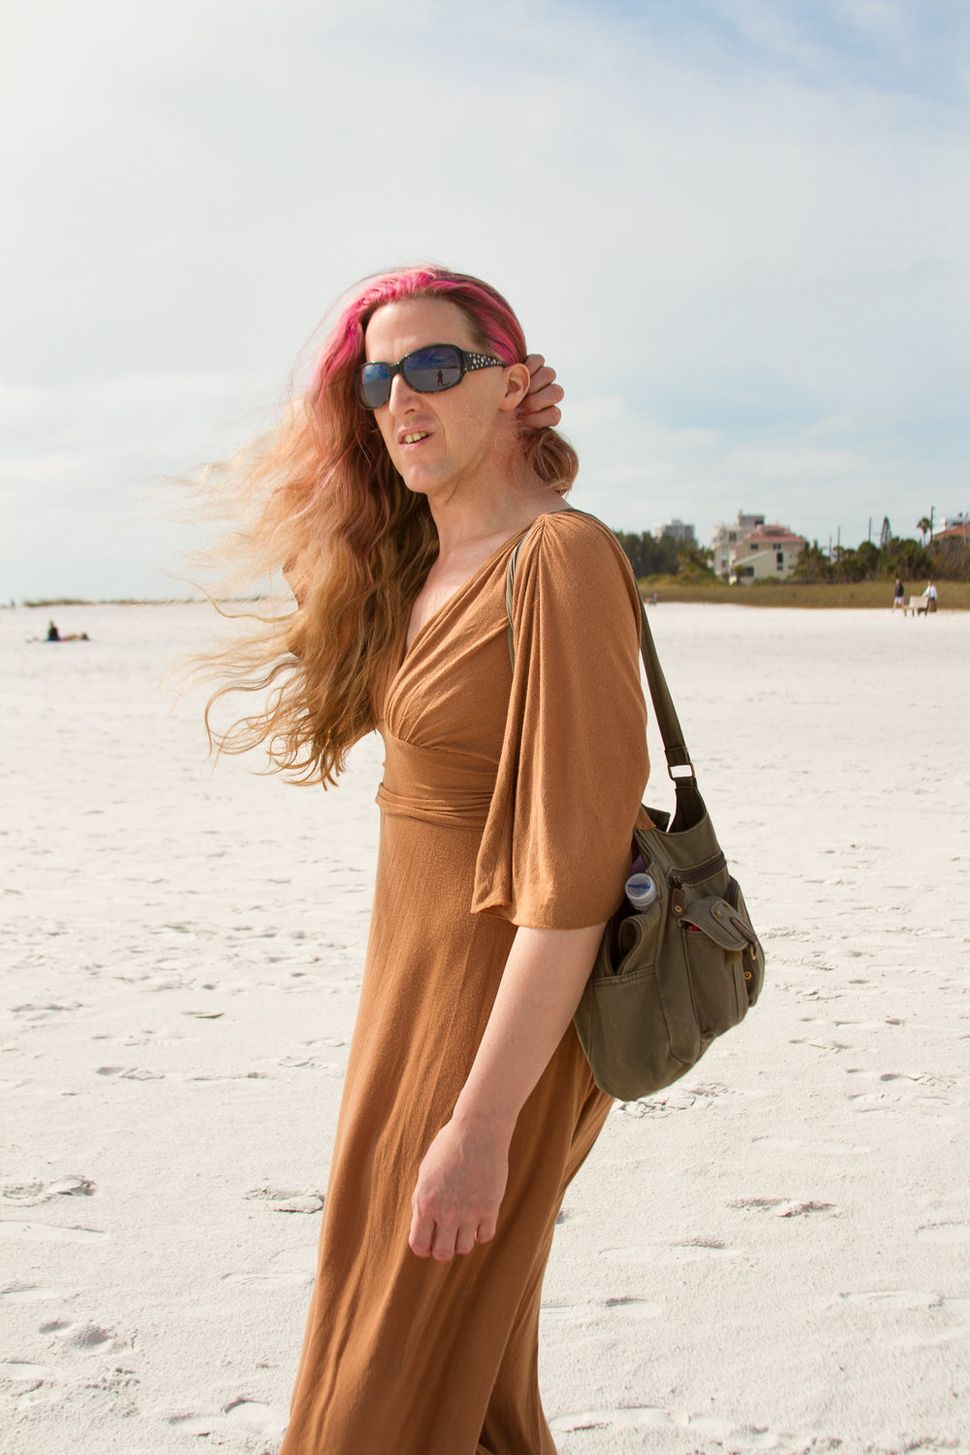 976989f11866 Puberty At 33: A Trans Woman's Mid-Life Coming Of Age | HuffPost